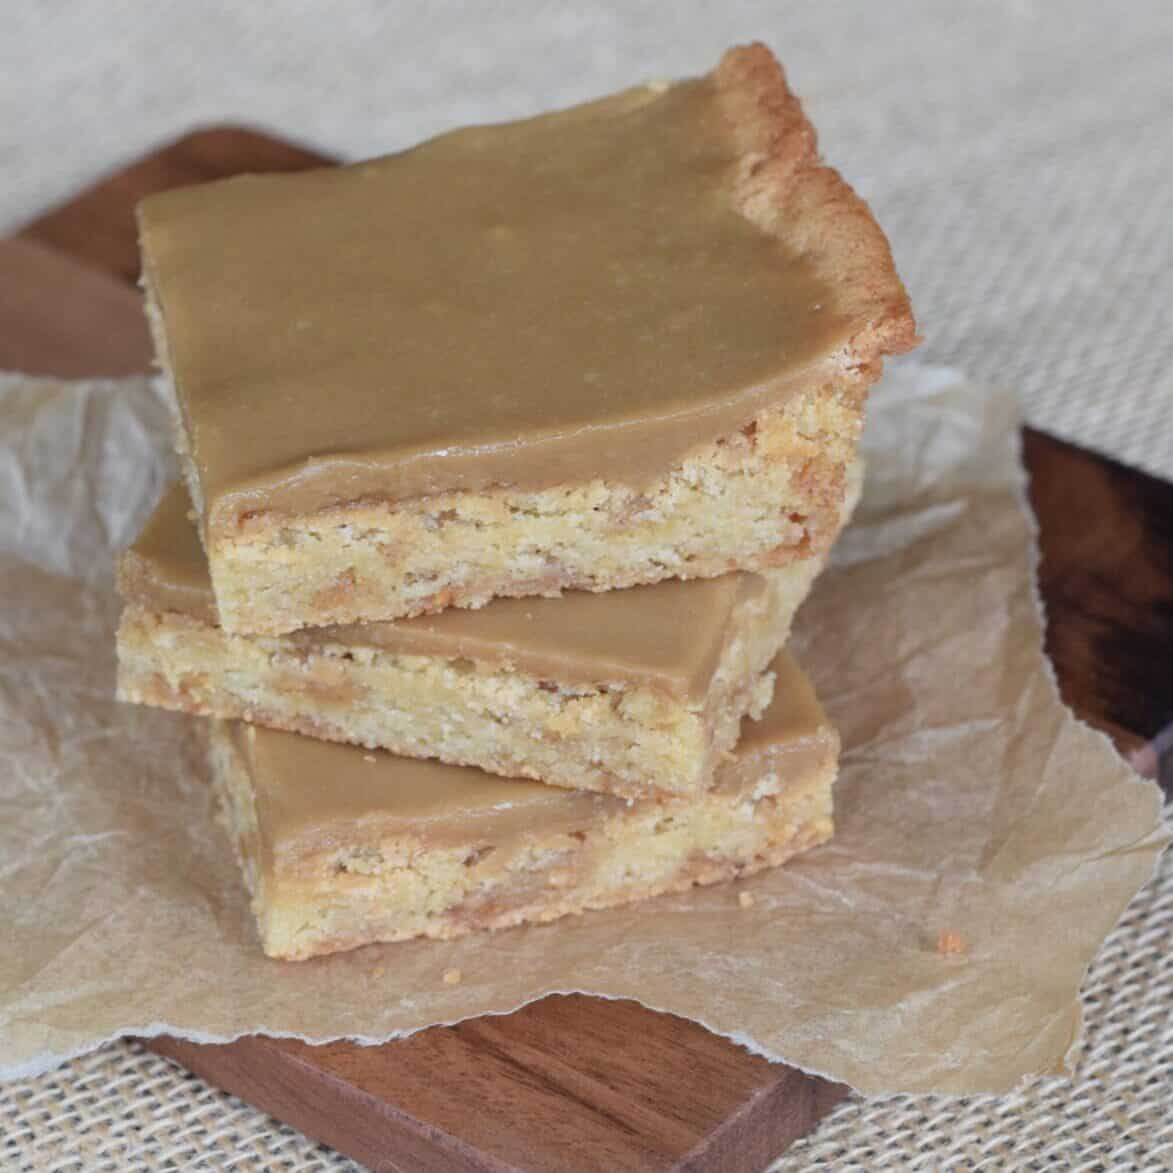 stacked blonde brownies iced on wooden cutting board